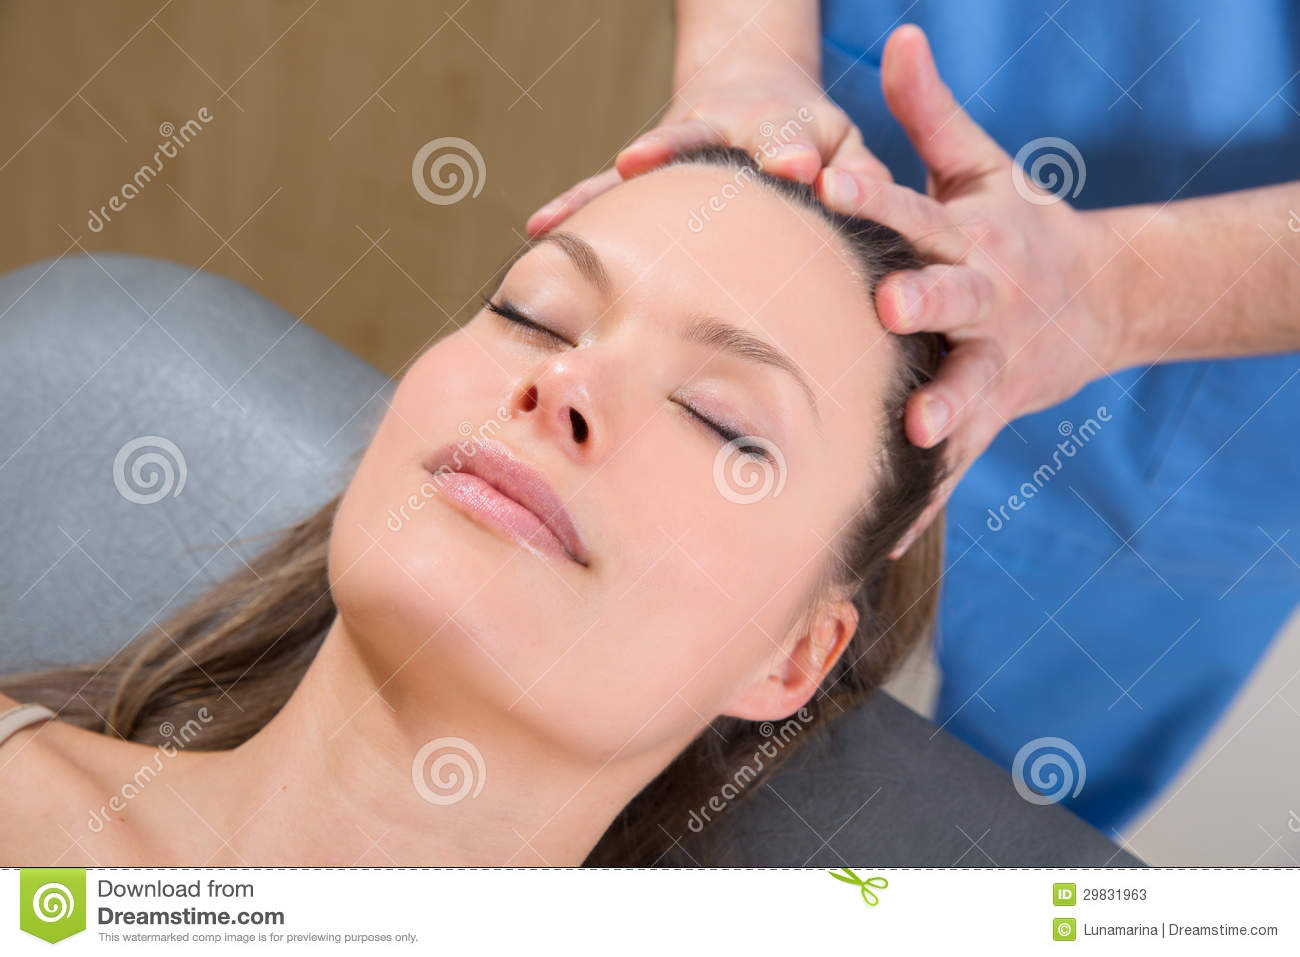 therapeutic massage face healing hands